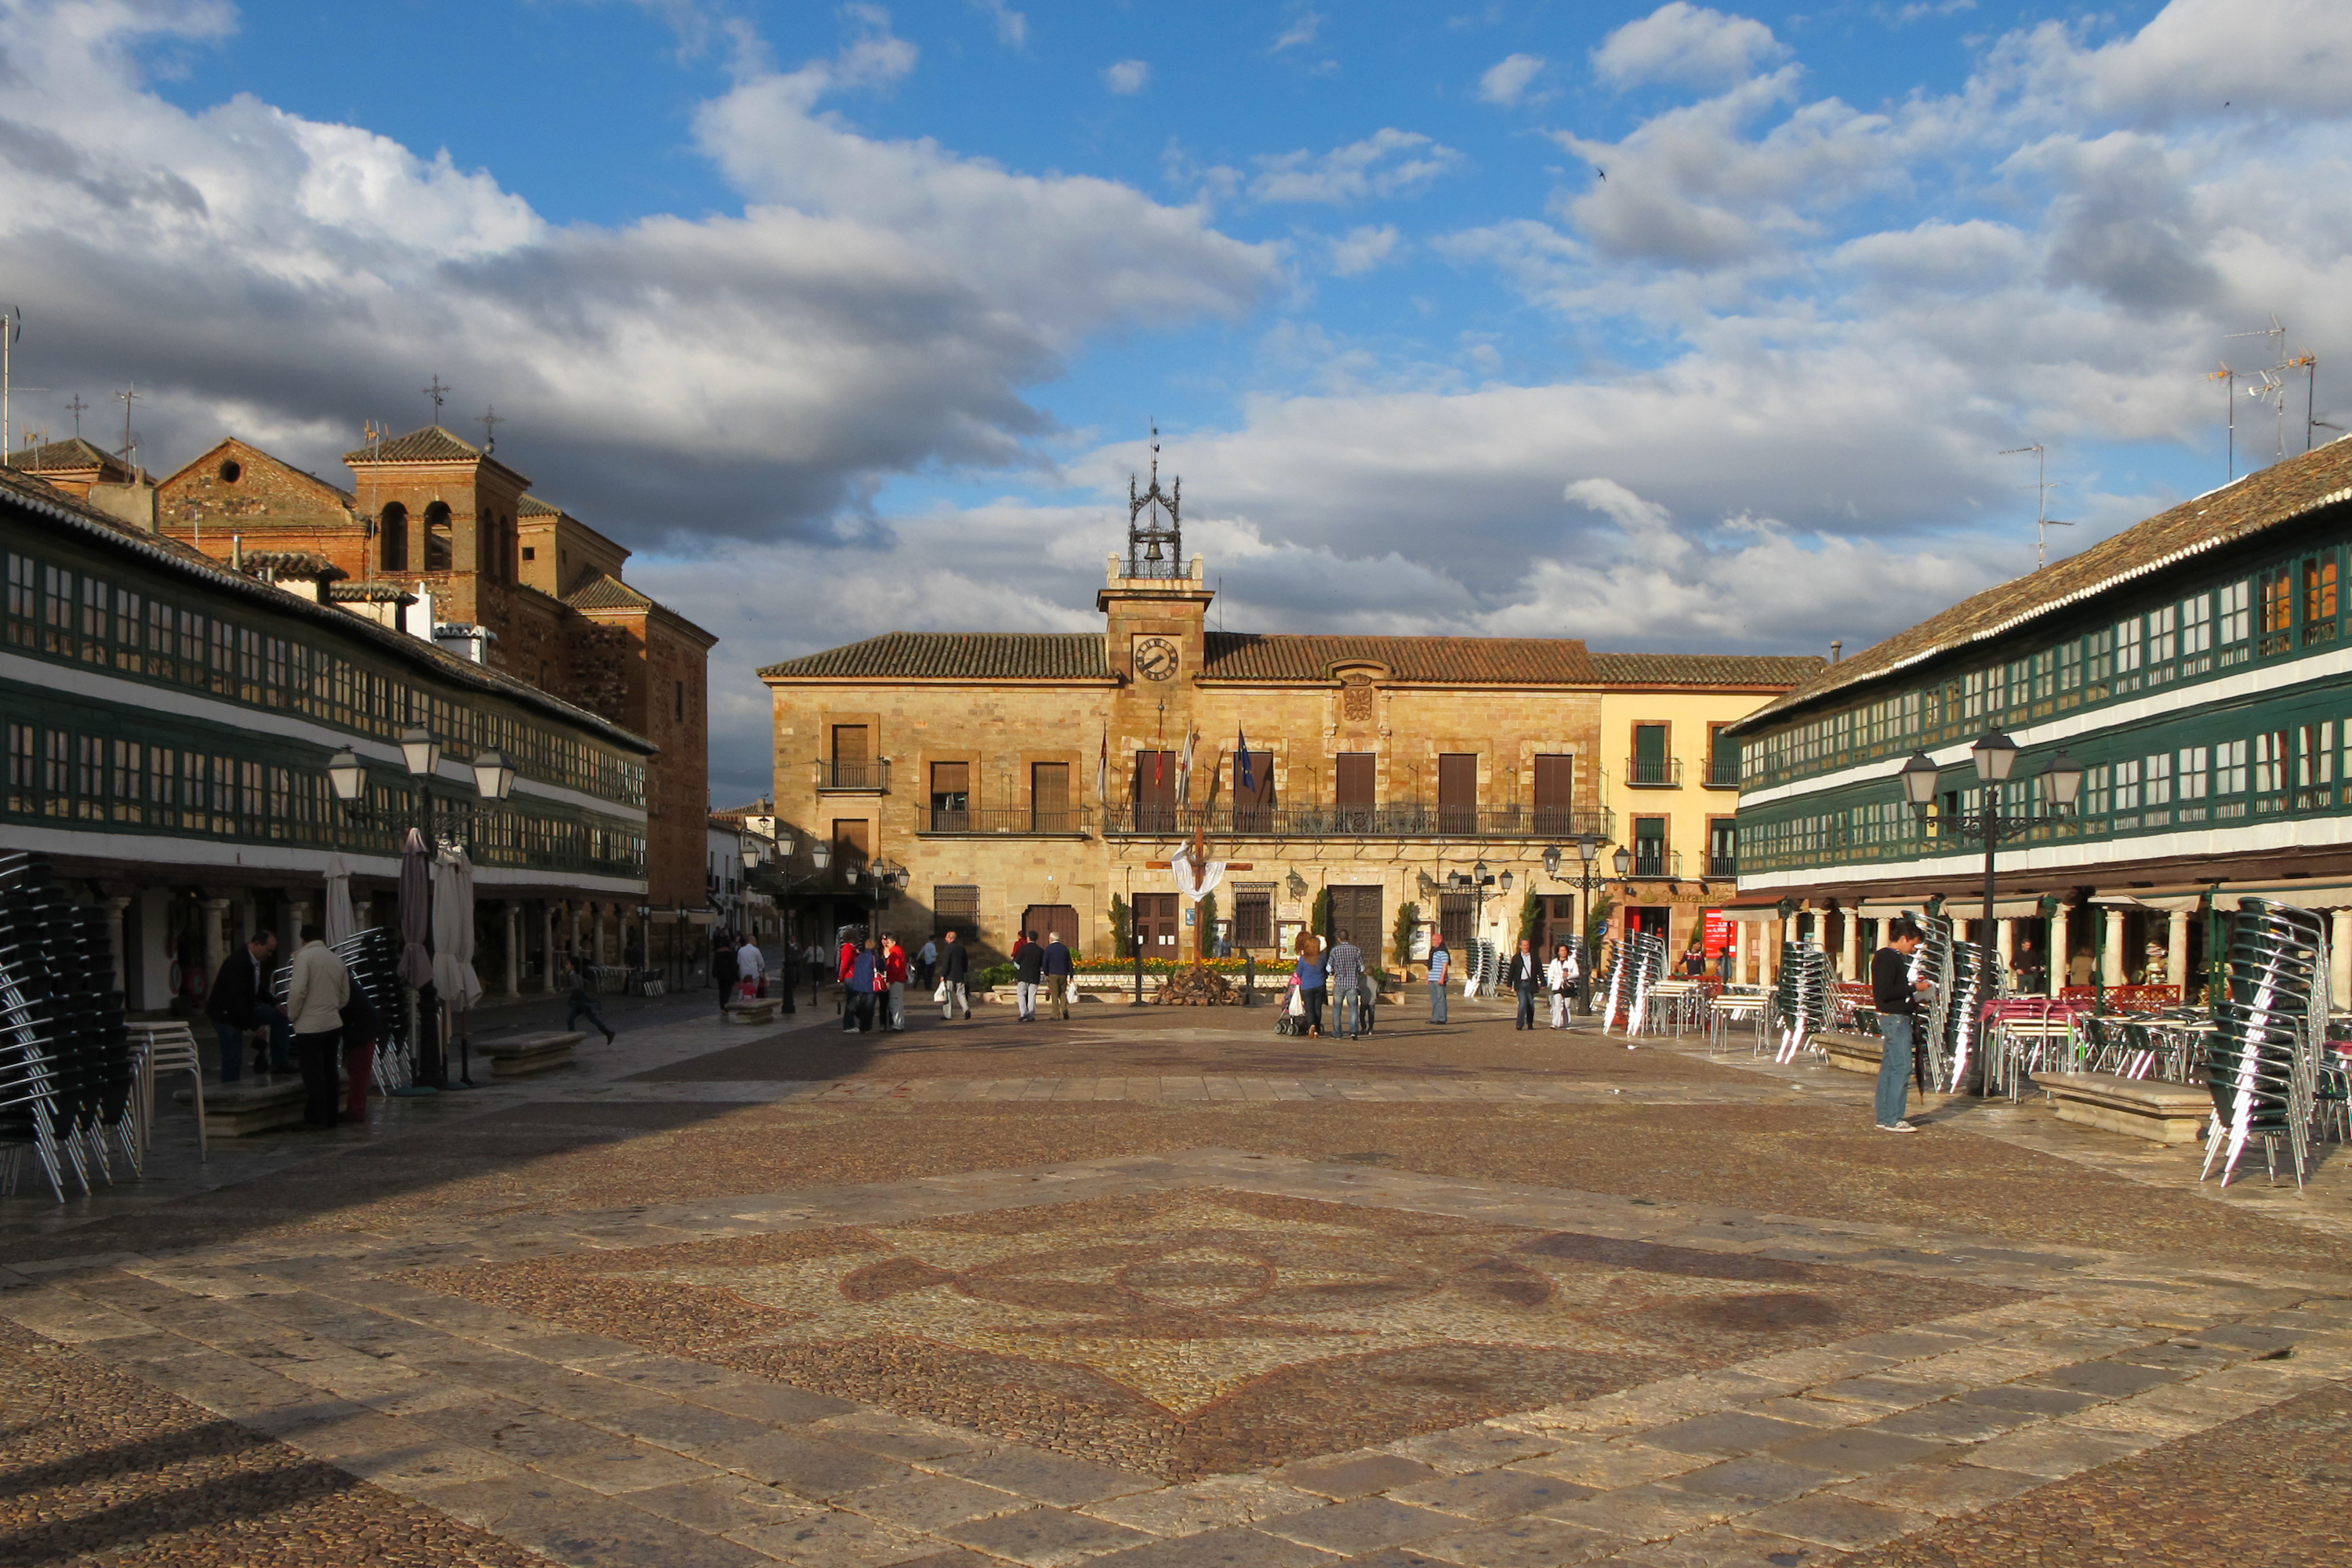 Almagro Spain  city images : Almagro 01 Wikipedia, the free encyclopedia